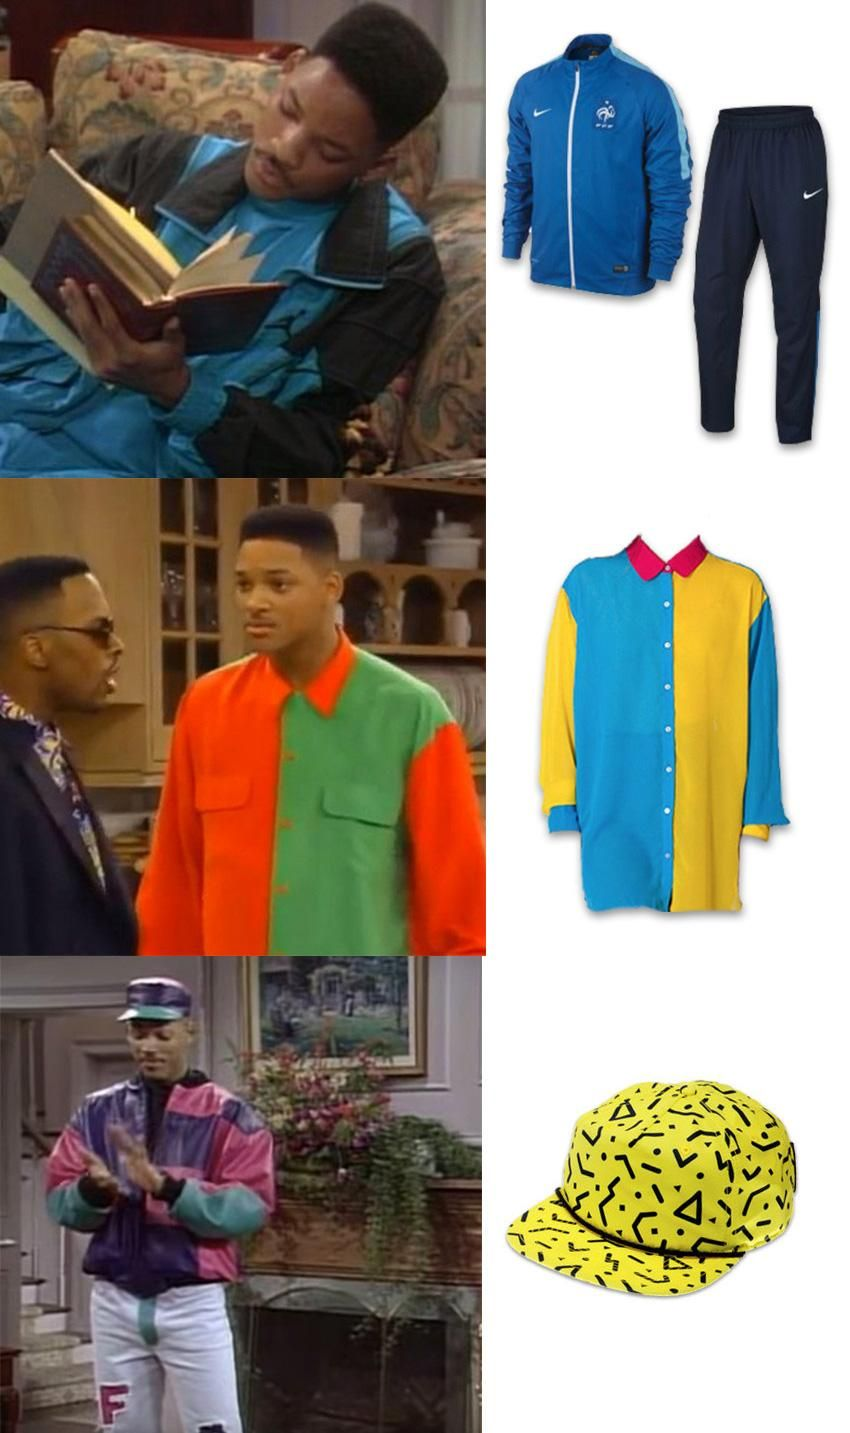 3be65c46b2e Here are some of the most notable outfits worn in the Fresh Prince of Bel  Air and how you can wear them today